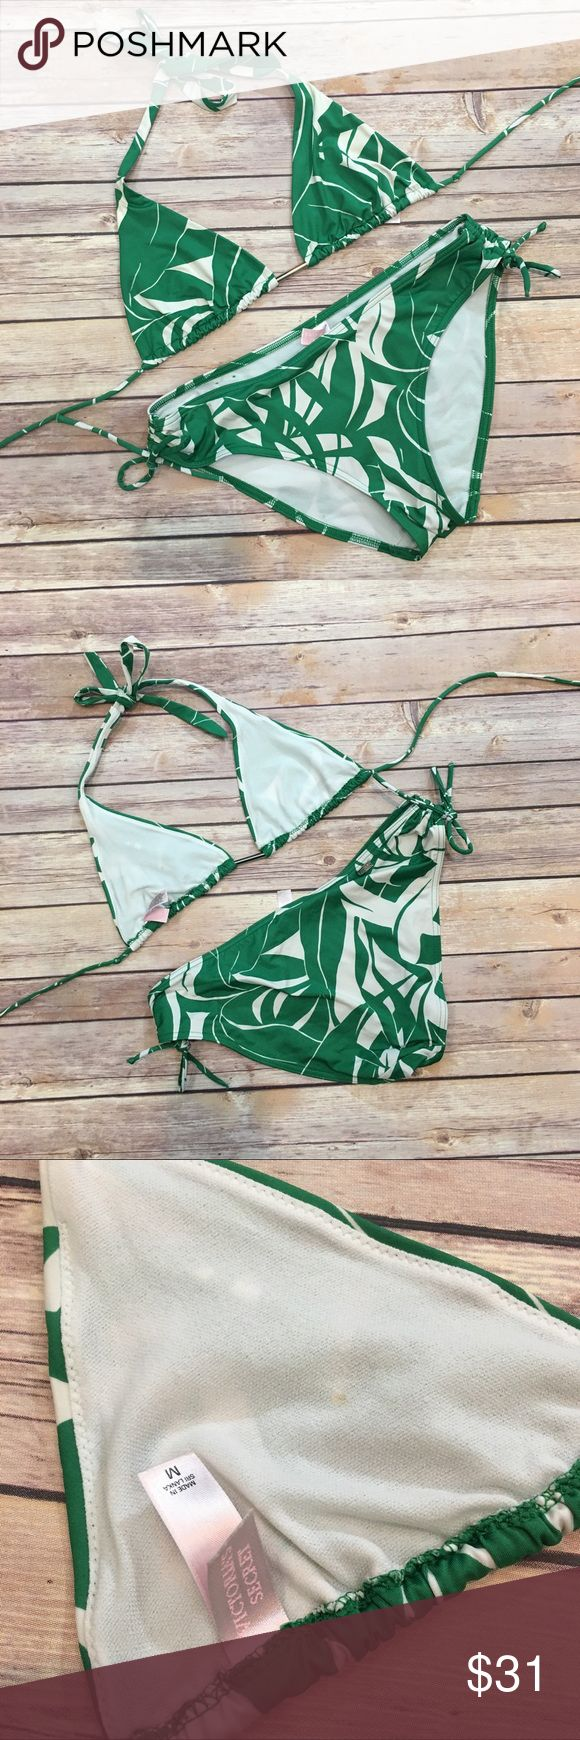 Victoria's Secret Green & Cream Bikini Set Victoria's Secret green & cream Bikini Set. EUC. Please carefully review each photo before purchase as they are the best descriptors of the item. Both top and bottom are size medium Victoria's Secret Swim Bikinis